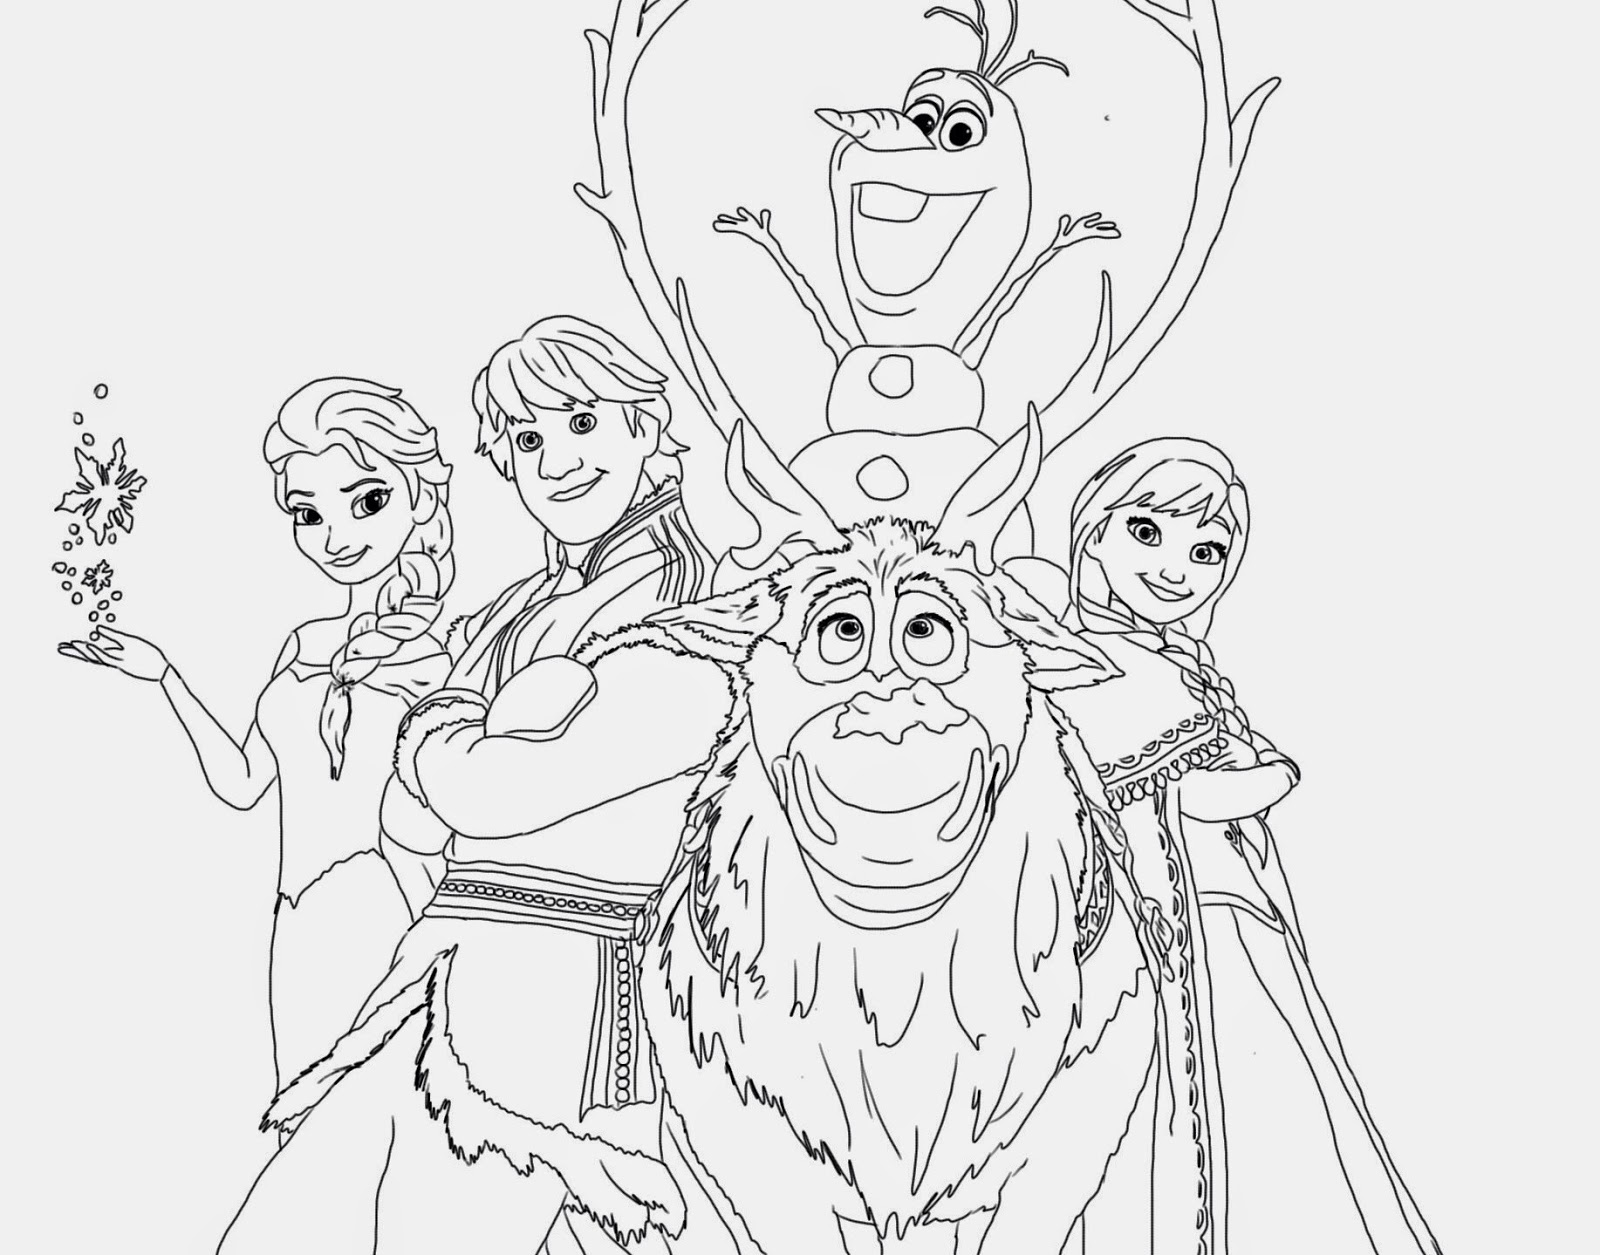 disney frozen printables coloring pages | Oloff From Frozen | Party Invitations Ideas